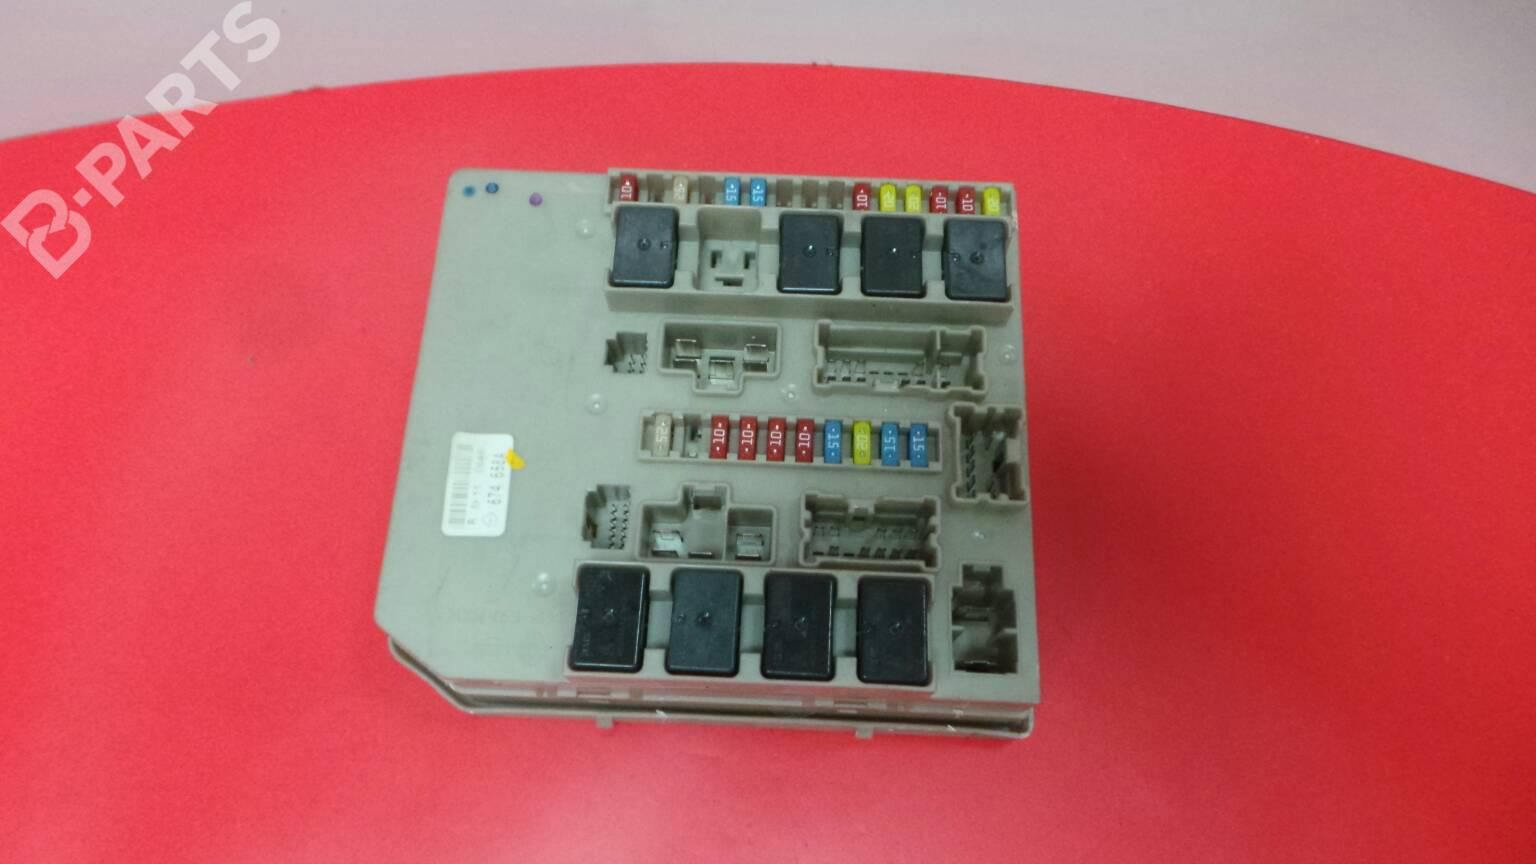 Fuse Box Renault Clio Iii Br0 1 Cr0 15 Dci 1296005 On A